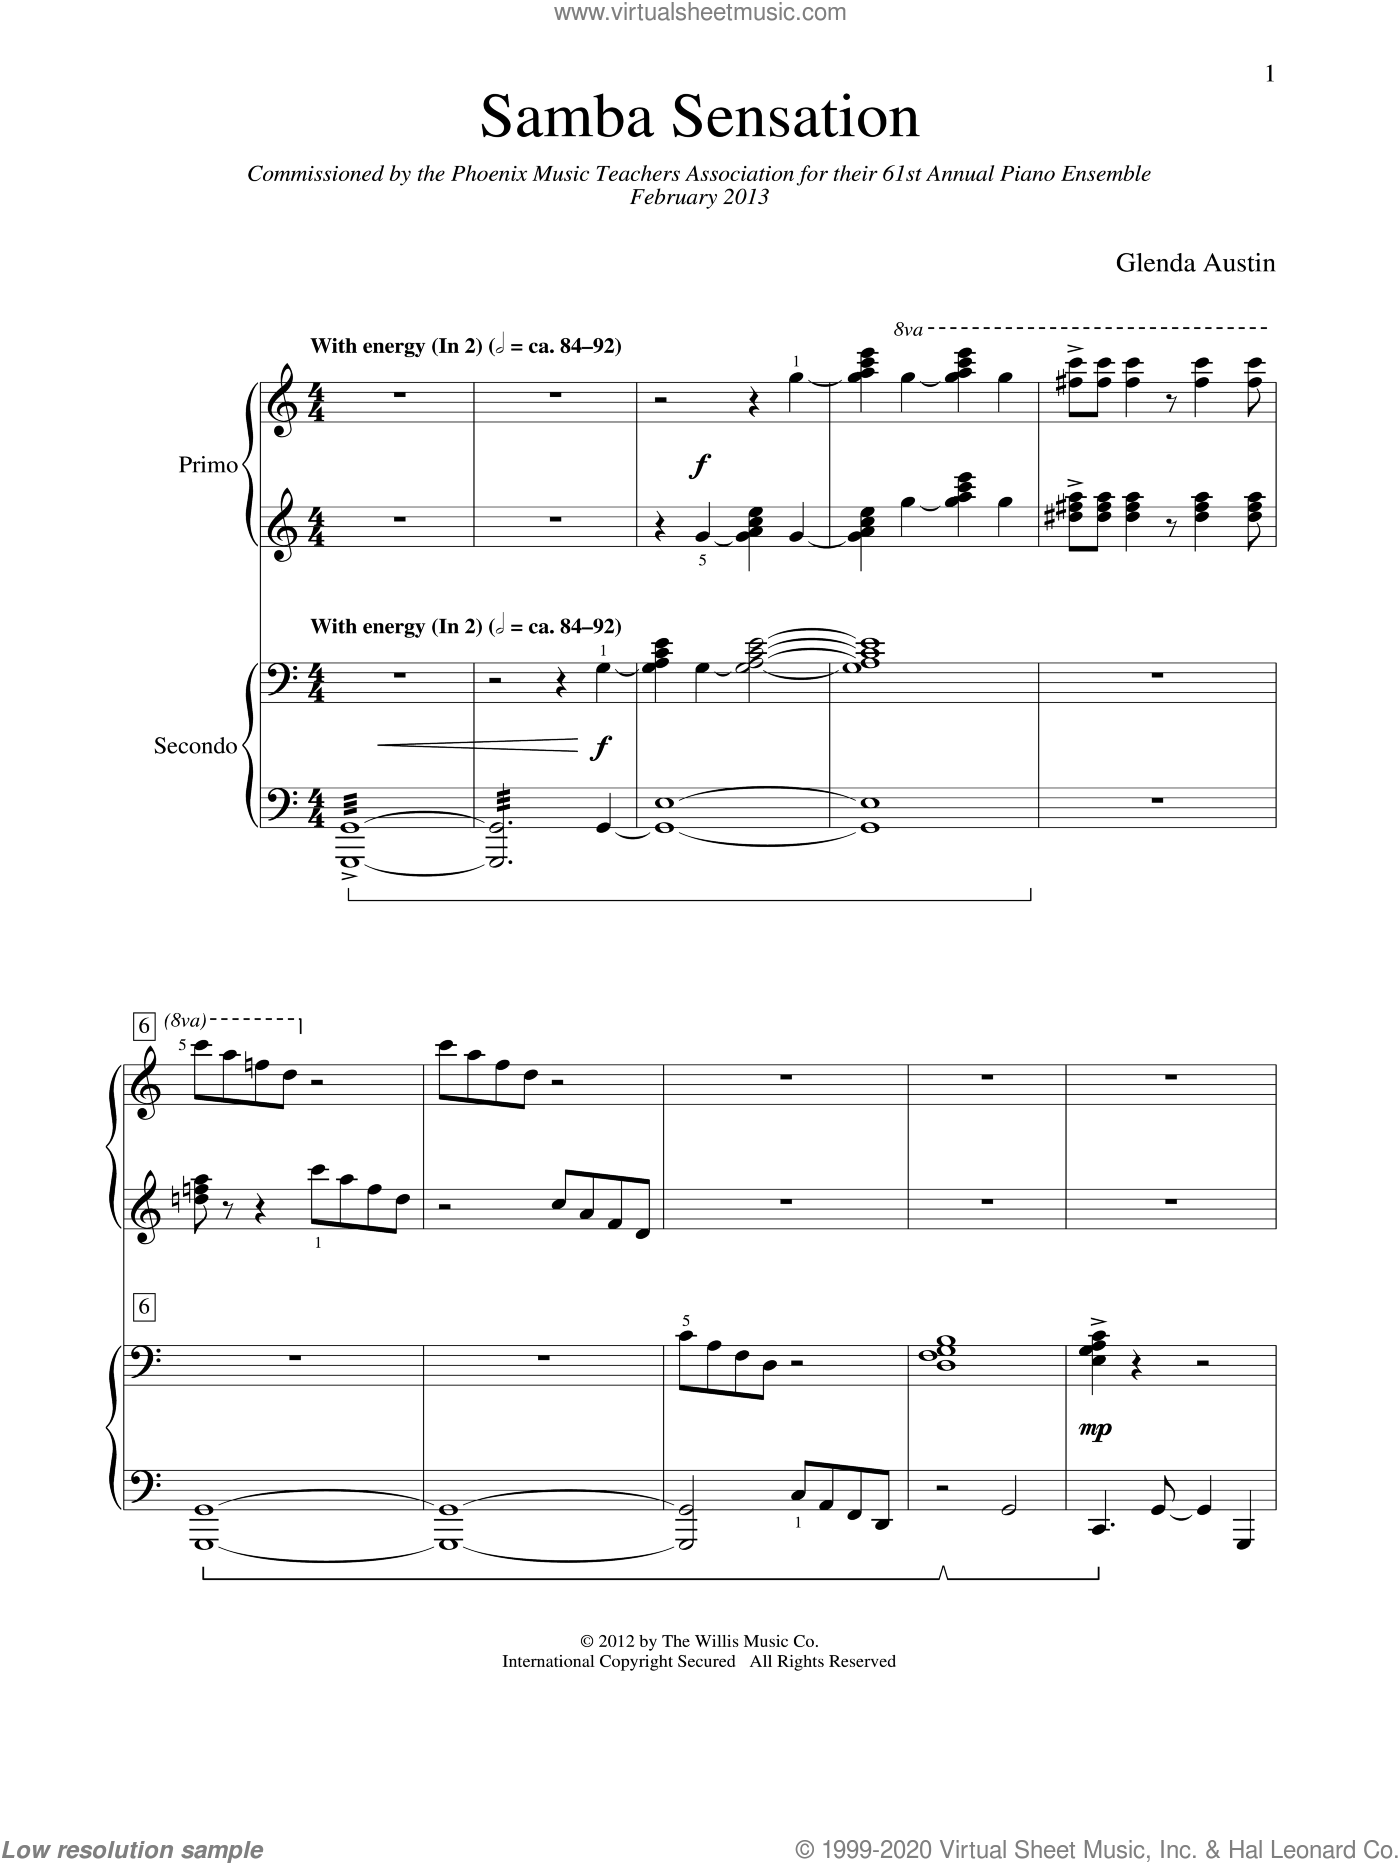 Samba Sensation sheet music for piano four hands (duets) by Glenda Austin. Score Image Preview.